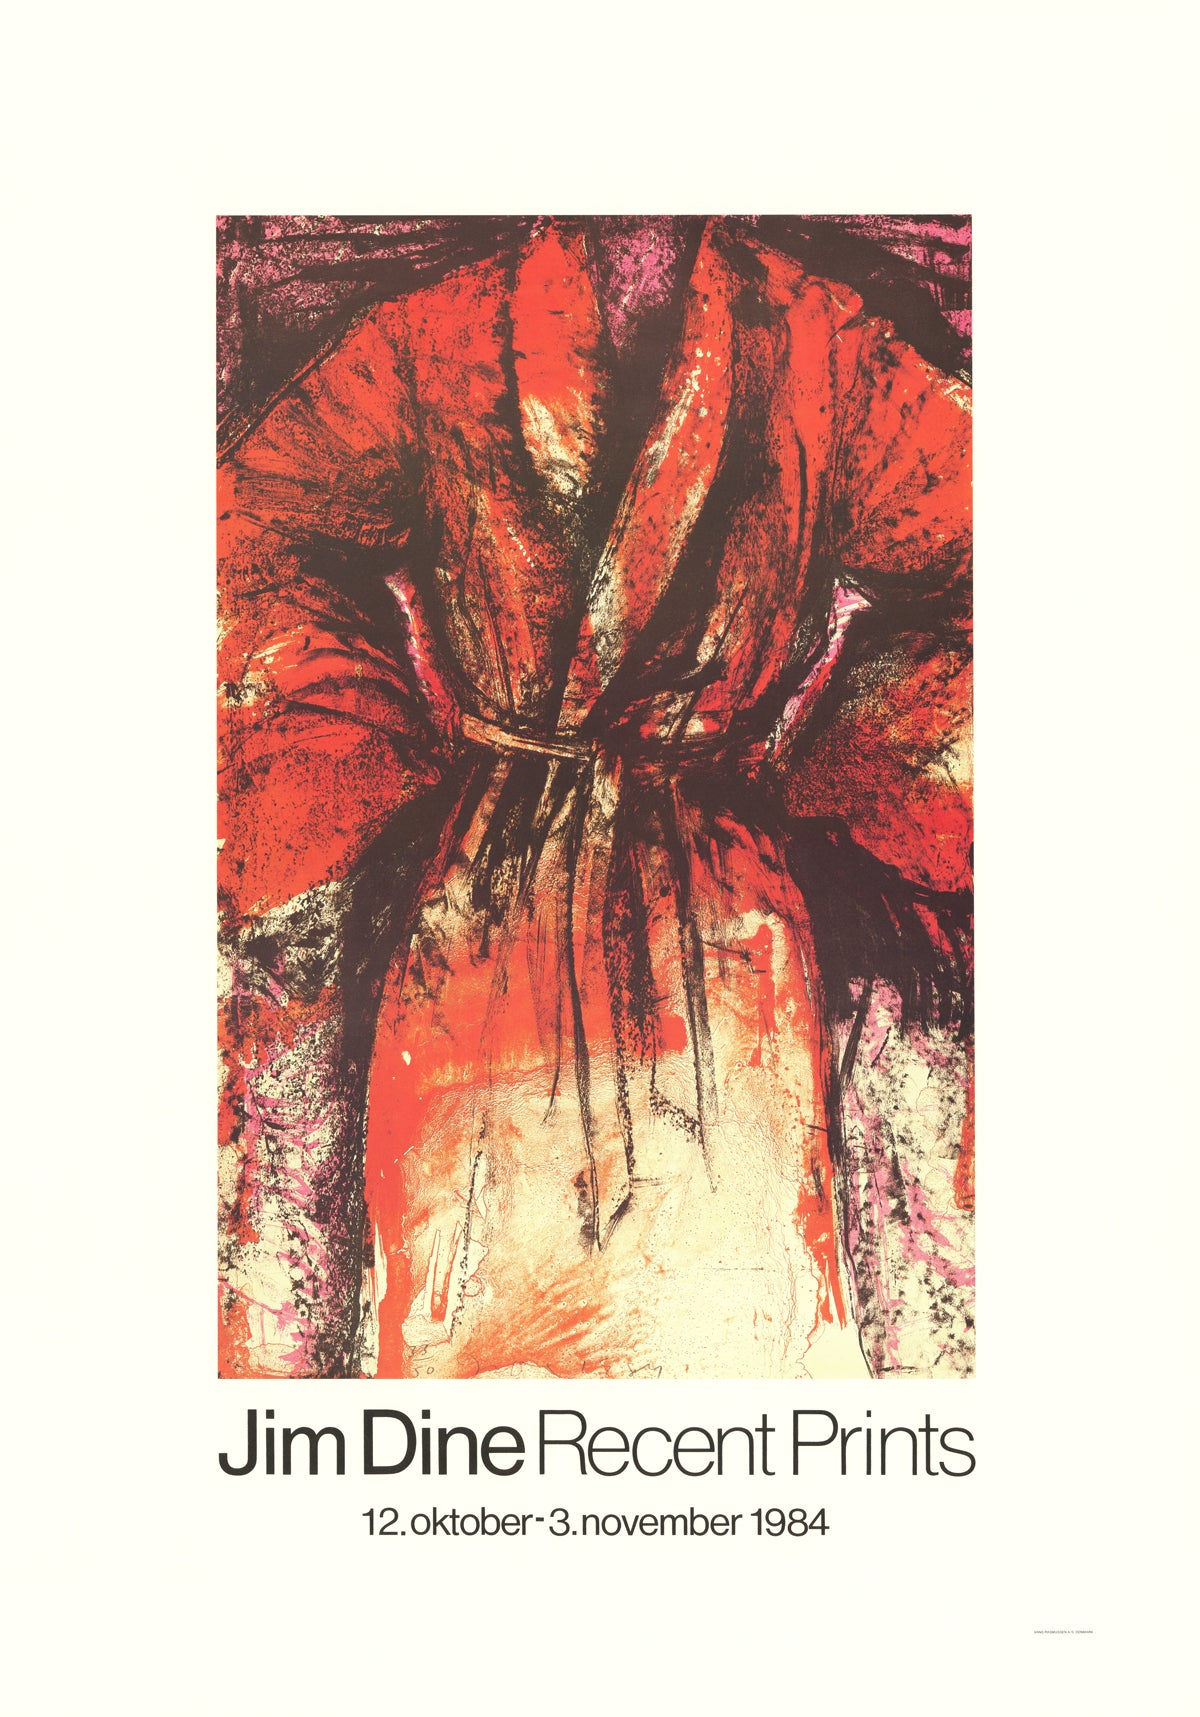 Jim Dine: Drawing with Light